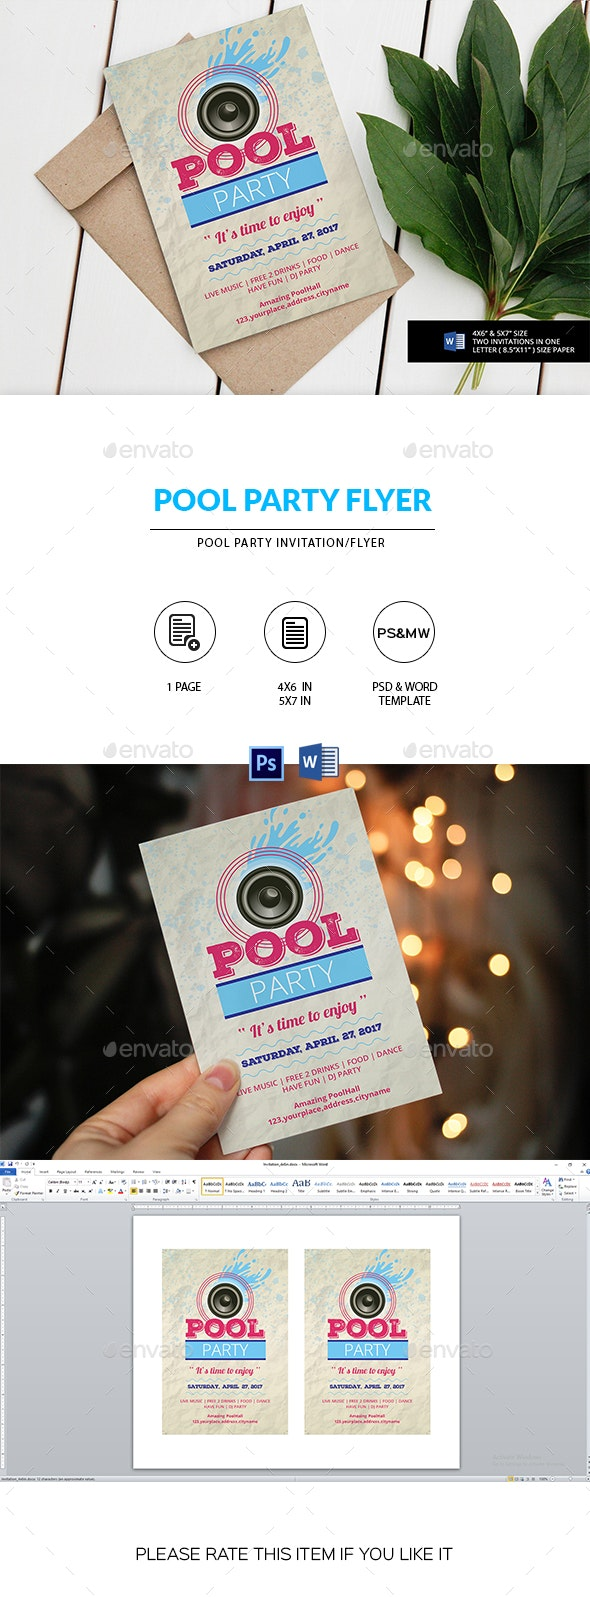 Pool Party Invitation/Flyer - Clubs & Parties Events